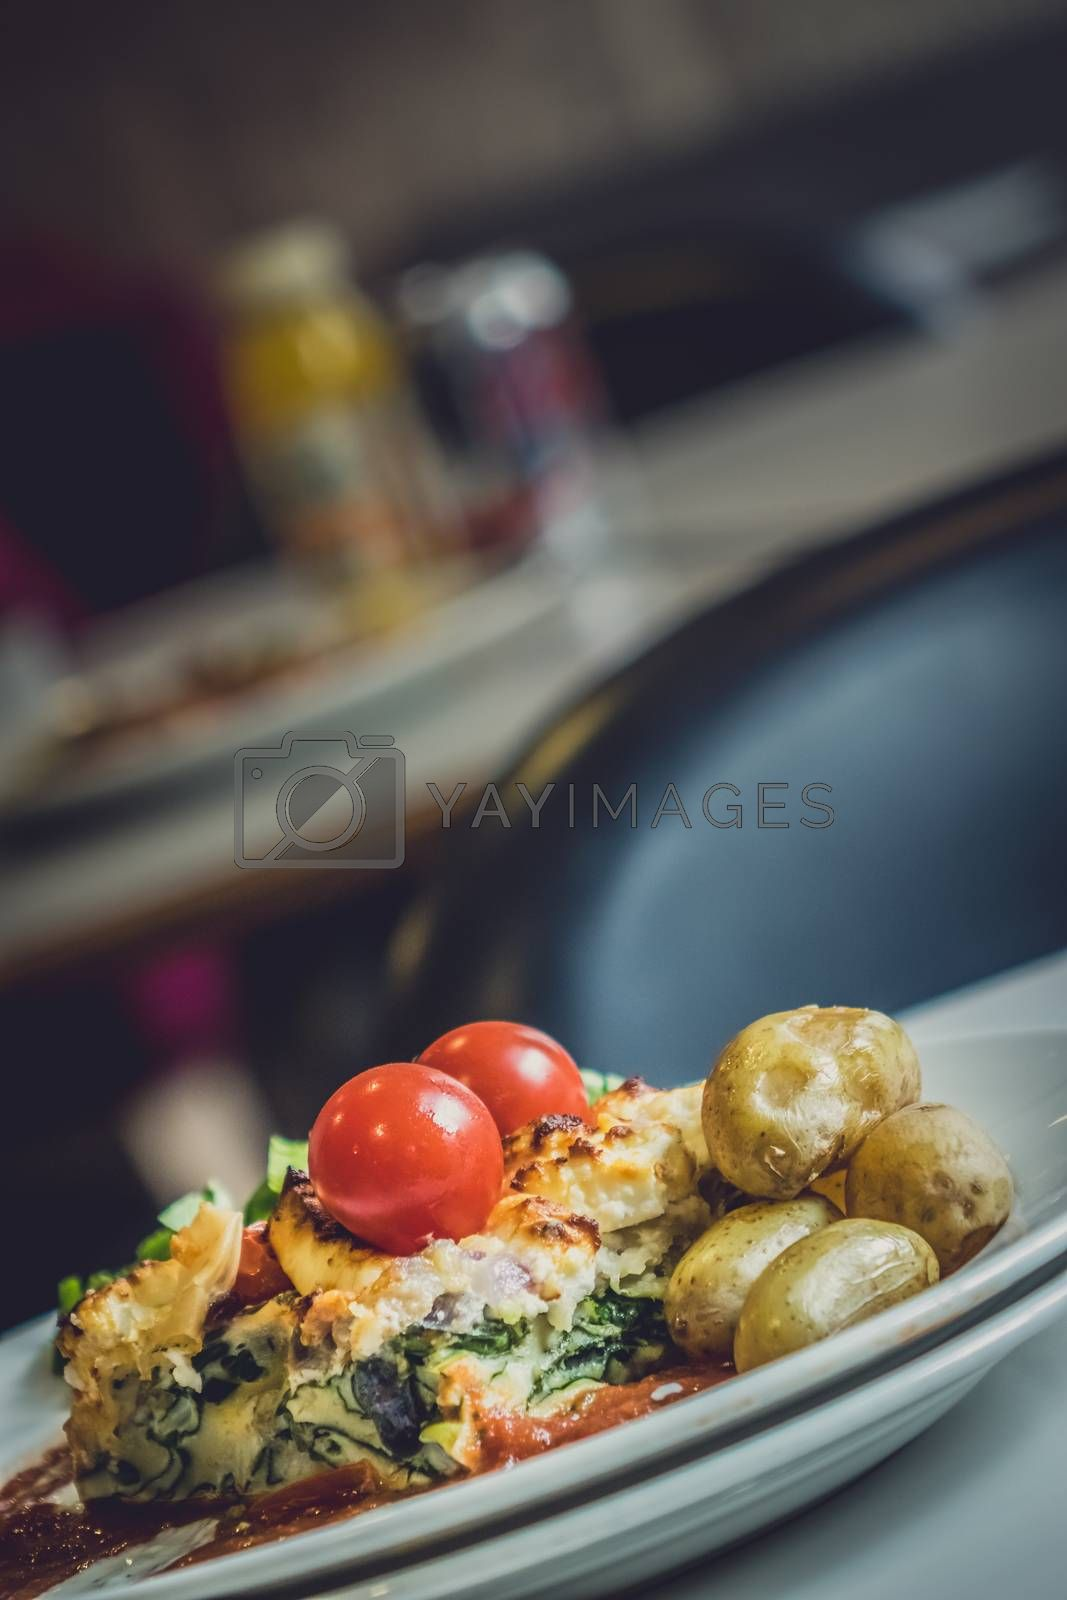 Feta and spinach layered quiche served with tomato sauce, cherry tomatoes and roast potatoes